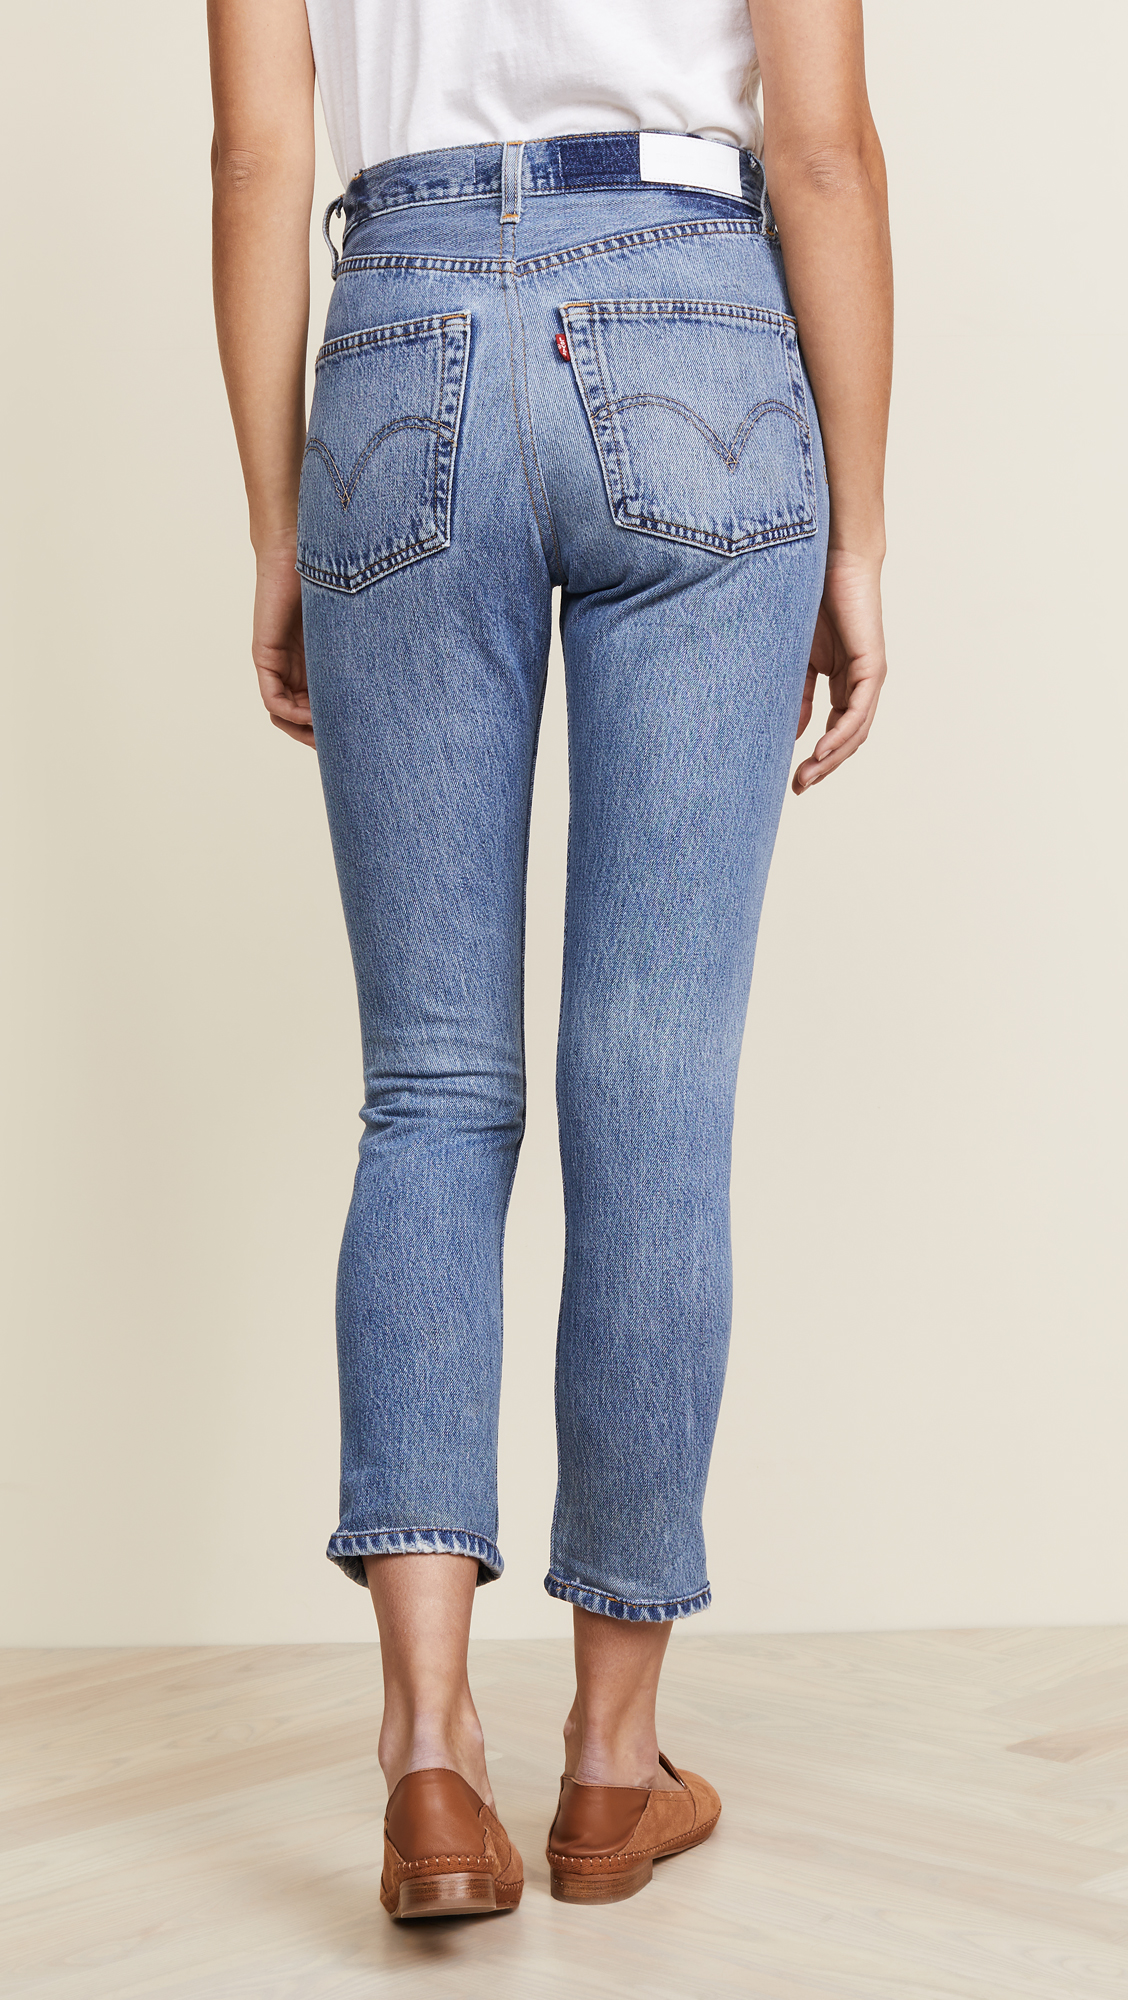 df039d3b9e80a RE DONE x Levi s High Rise Ankle Crop Jeans